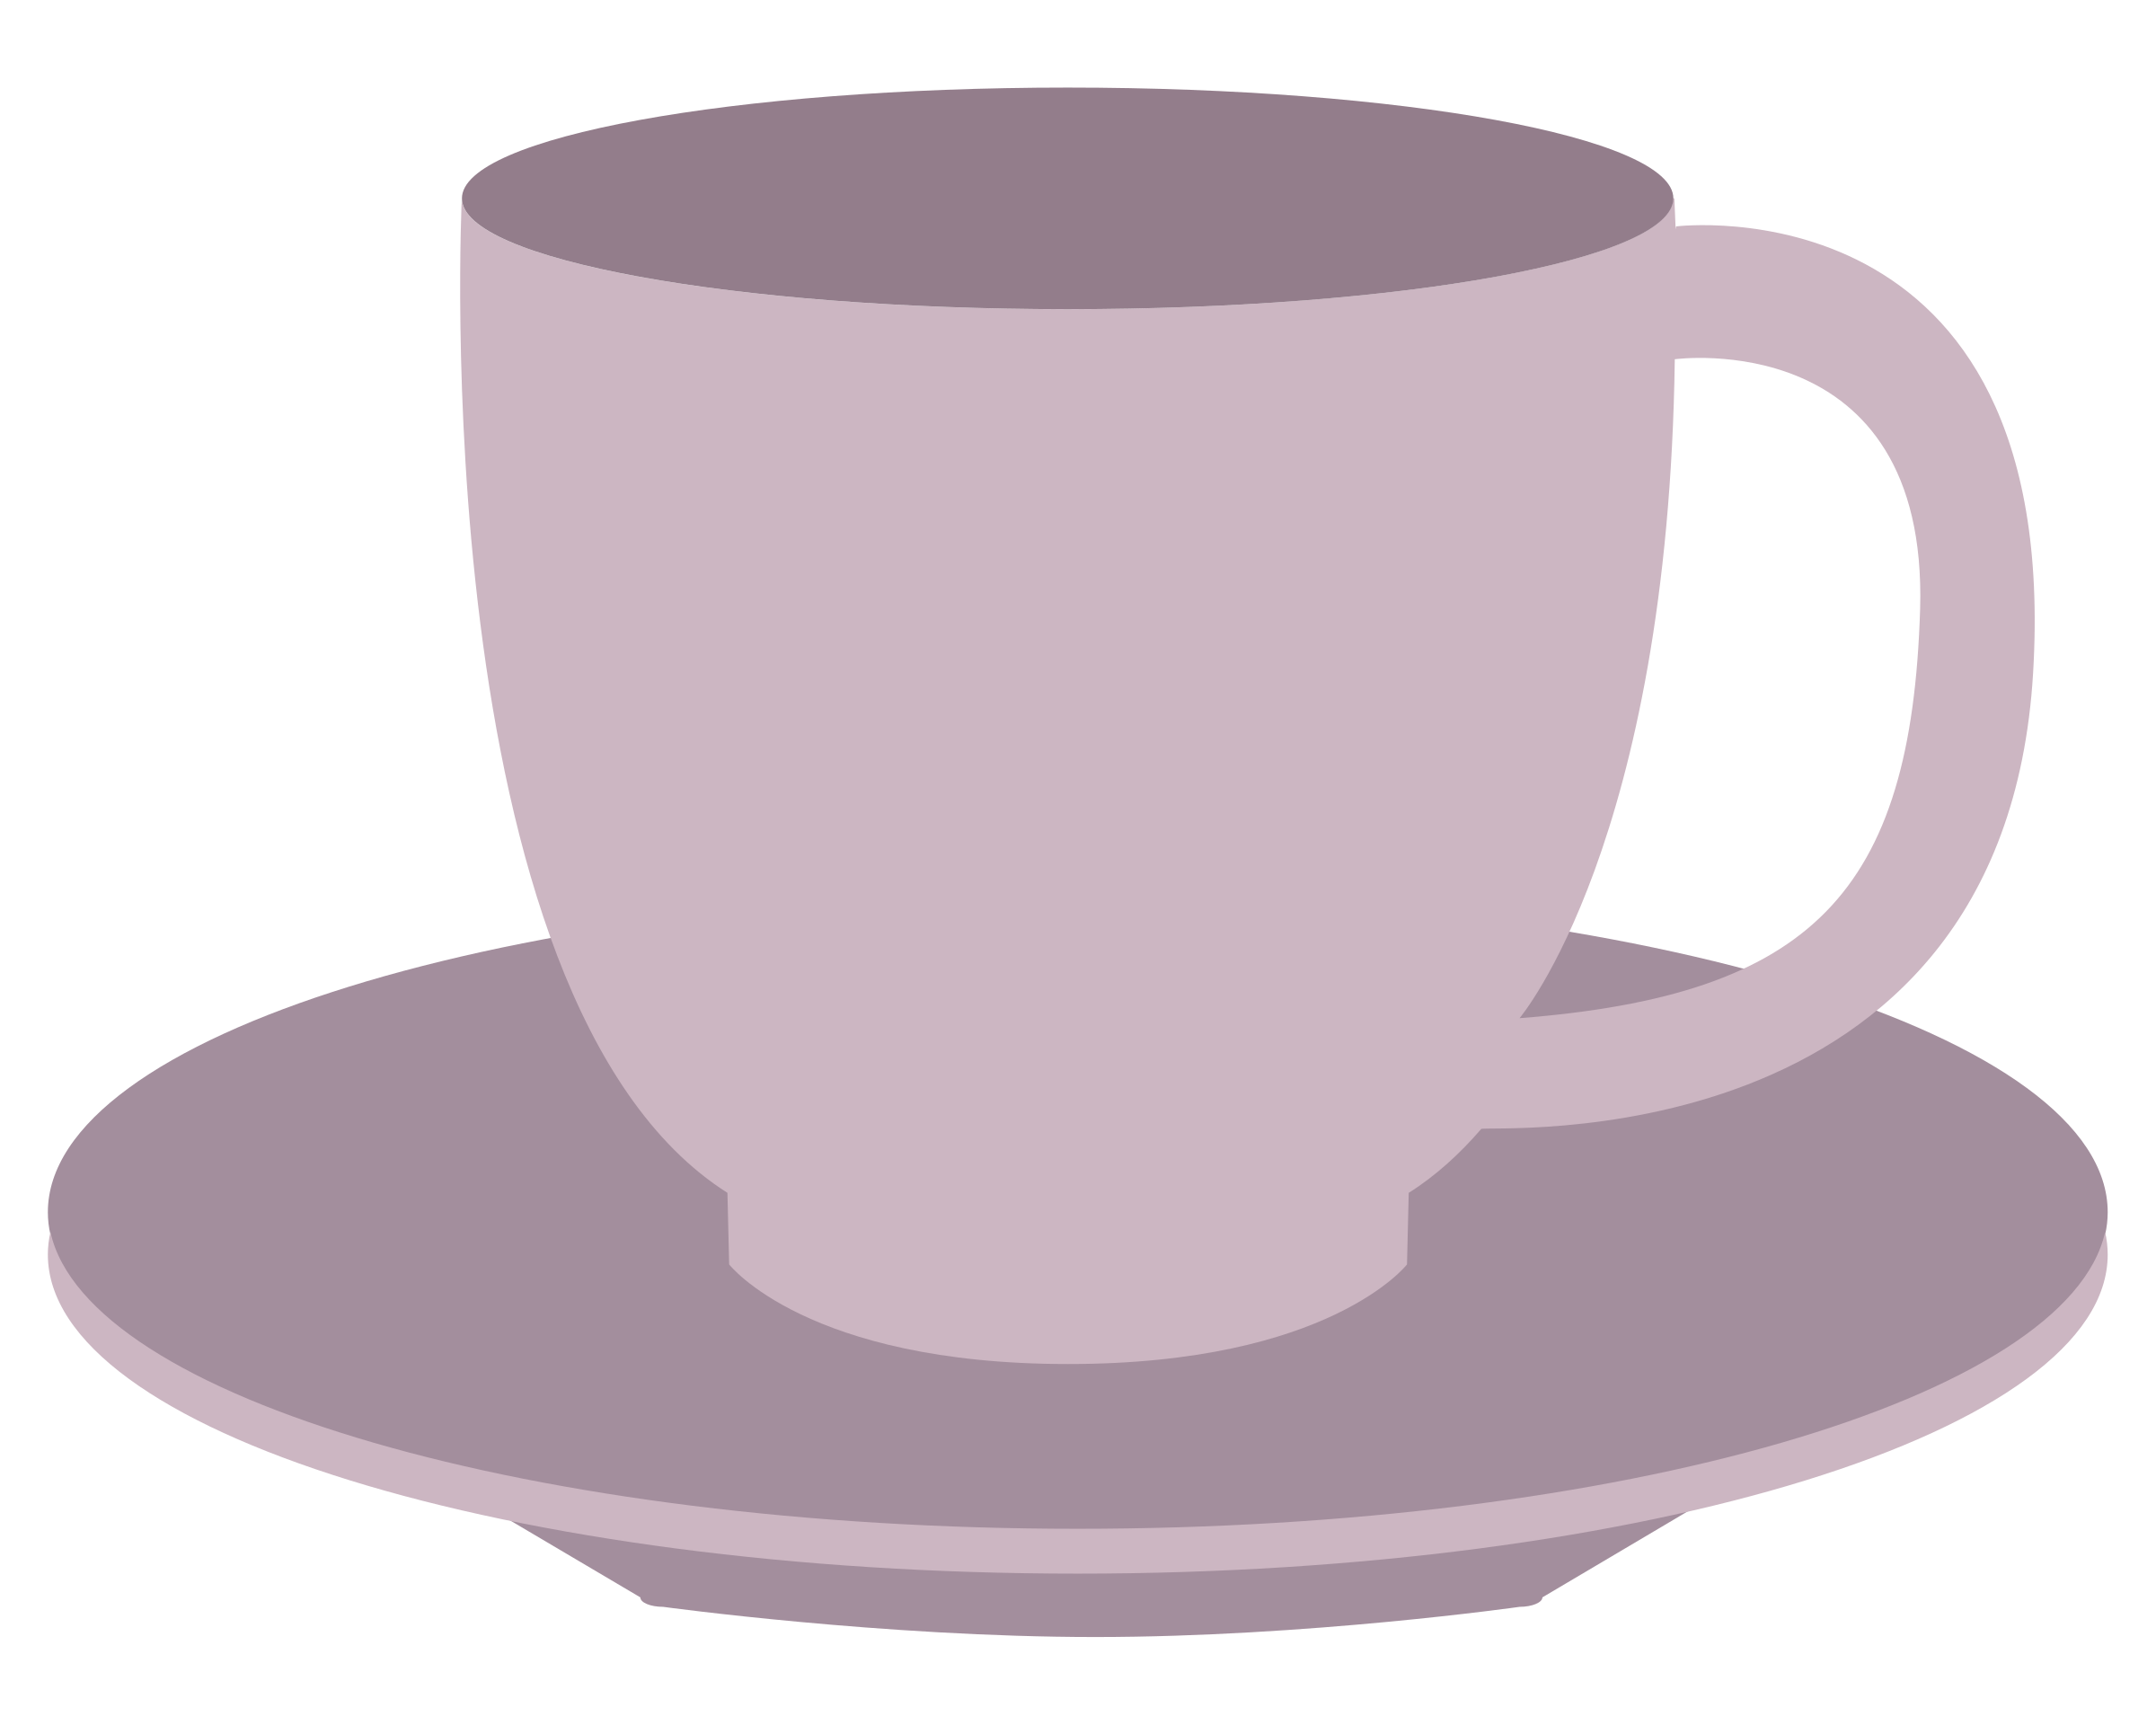 Teacup and saucer big. Cups clipart purple cup